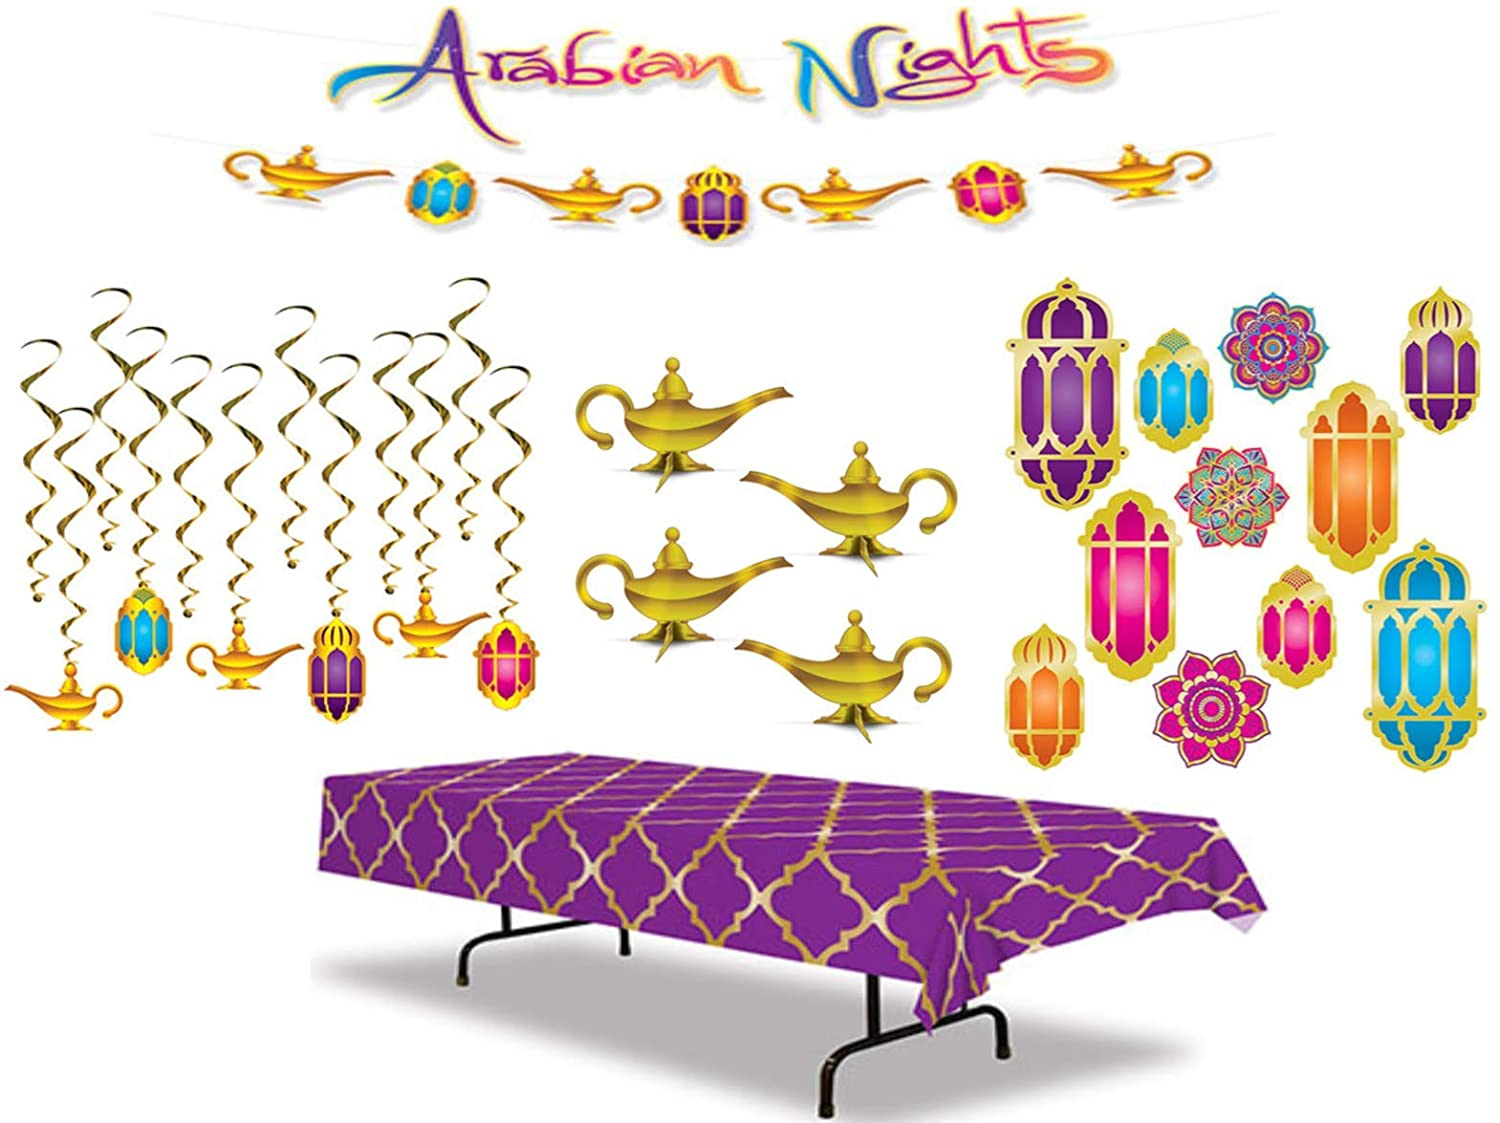 Arabian Nights Party Decoration Kit Including a Table Cover, Hanging Decorations, 3-D Foil Centerpieces, Streamer Set, and Cutouts